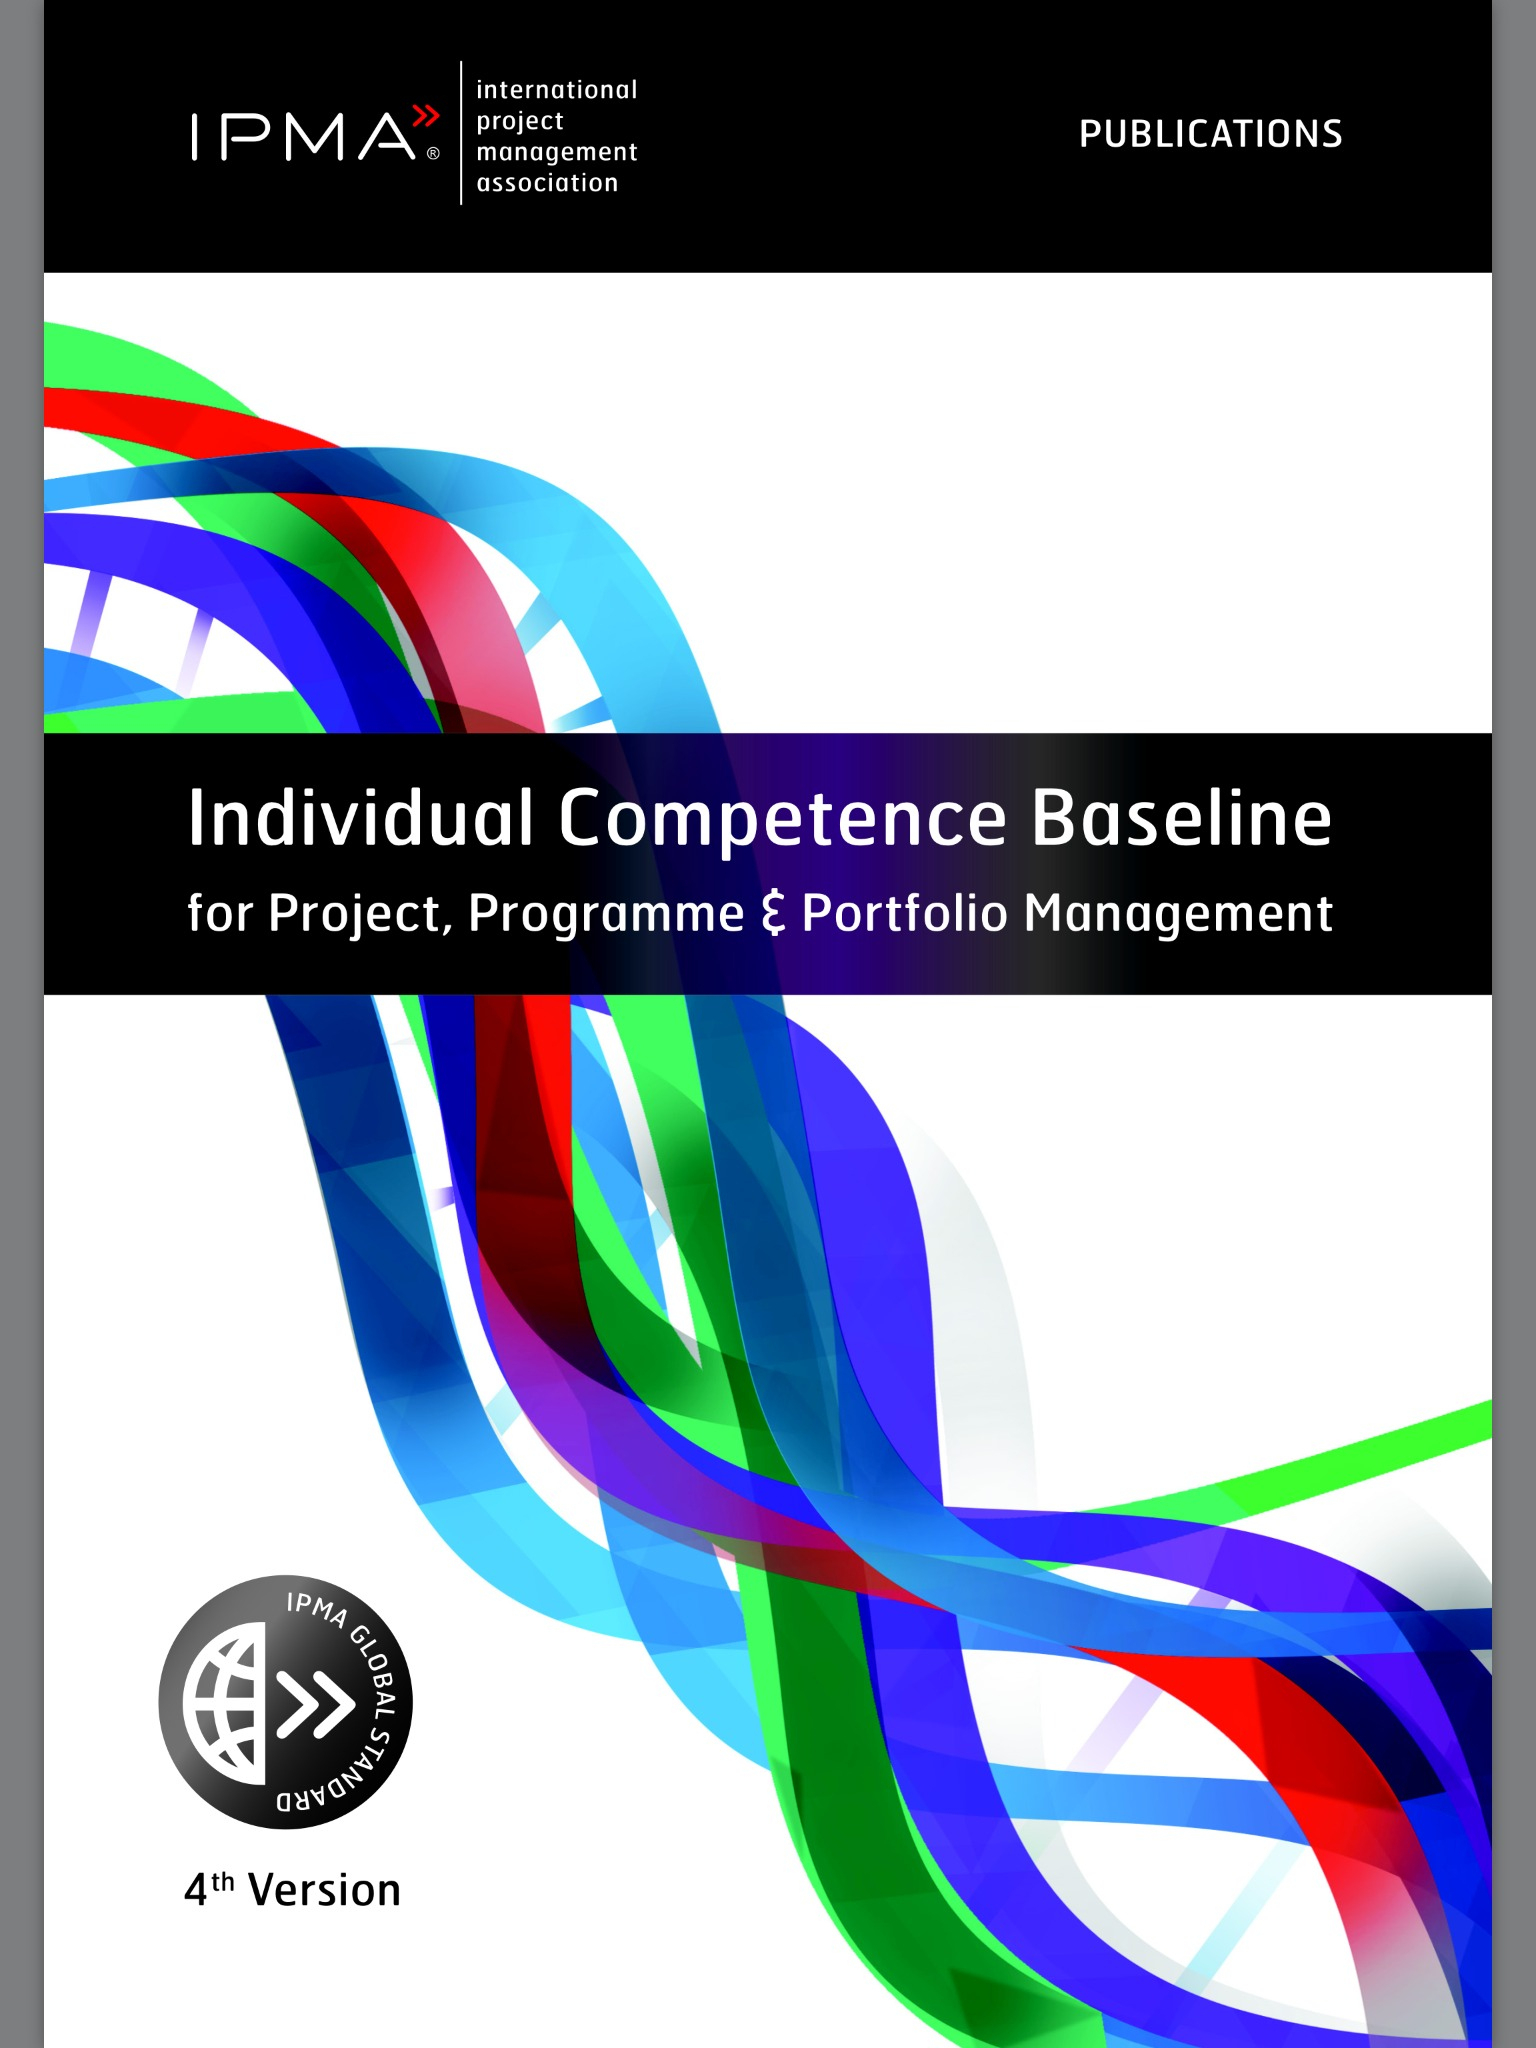 Individual Competence Baseline For Project, Programme And tout Musique Cirque Mp3